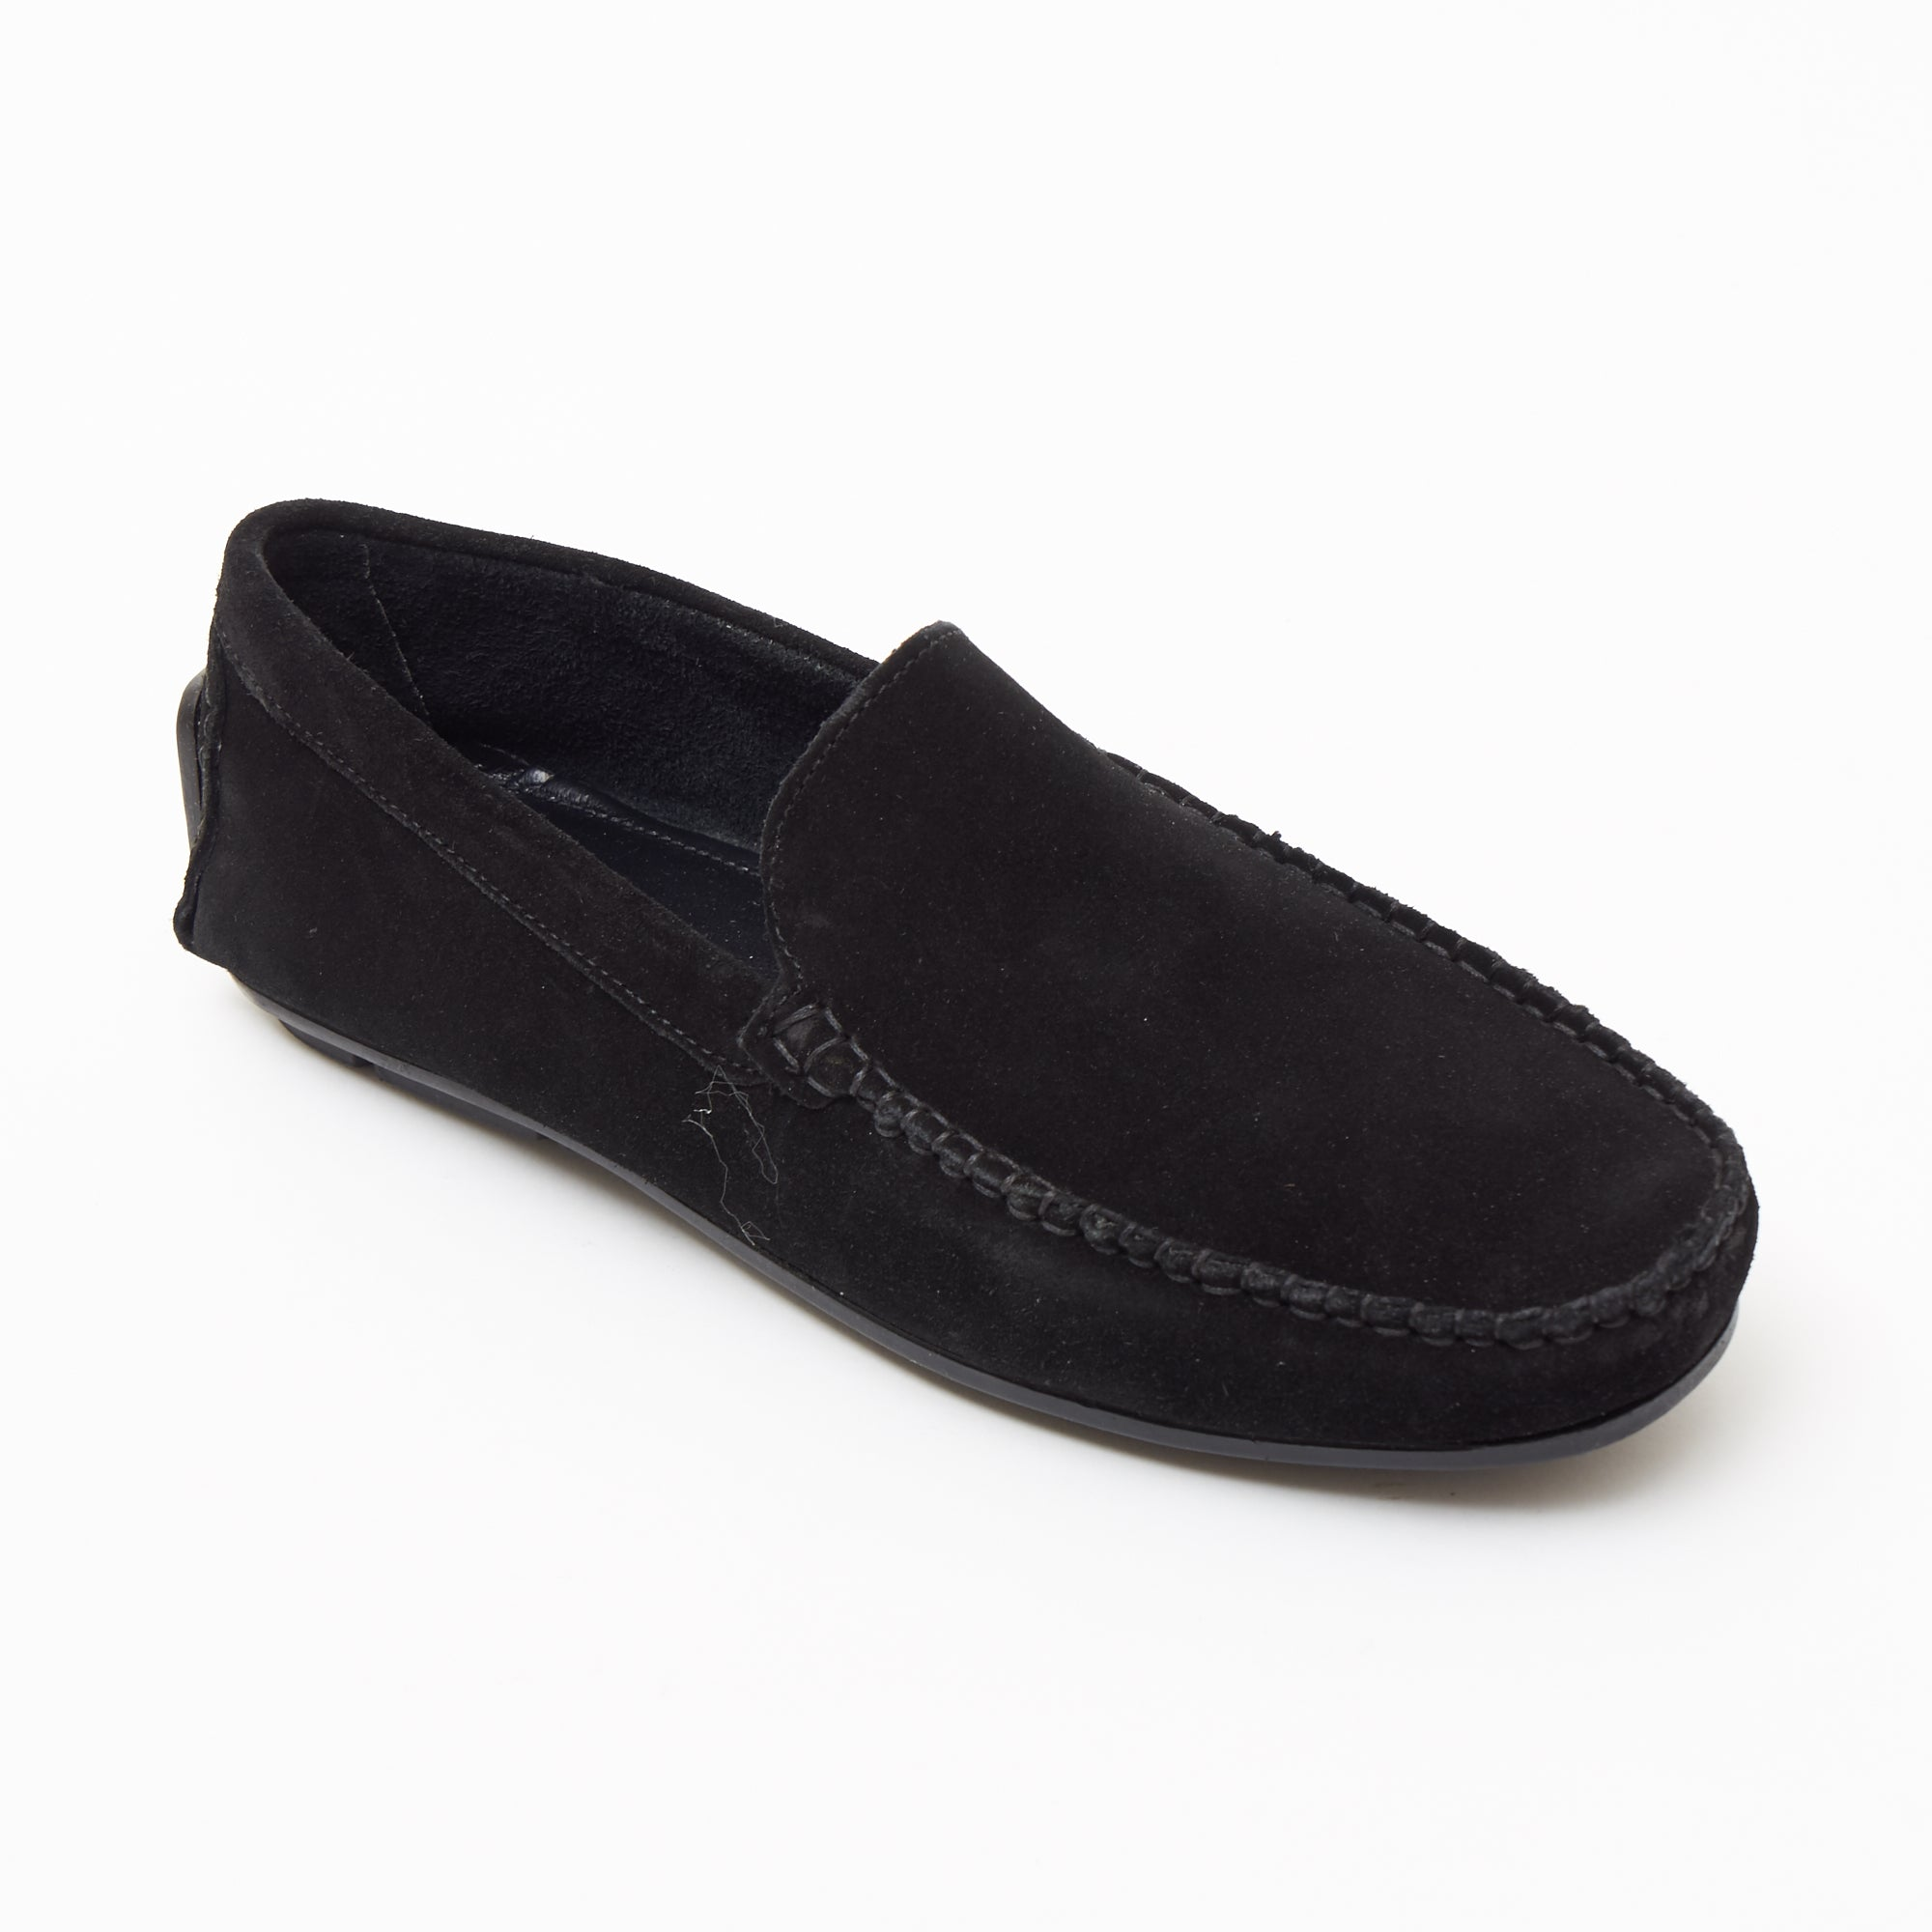 Mens Suede Casual Slip On Shoes - 4611-P_Black